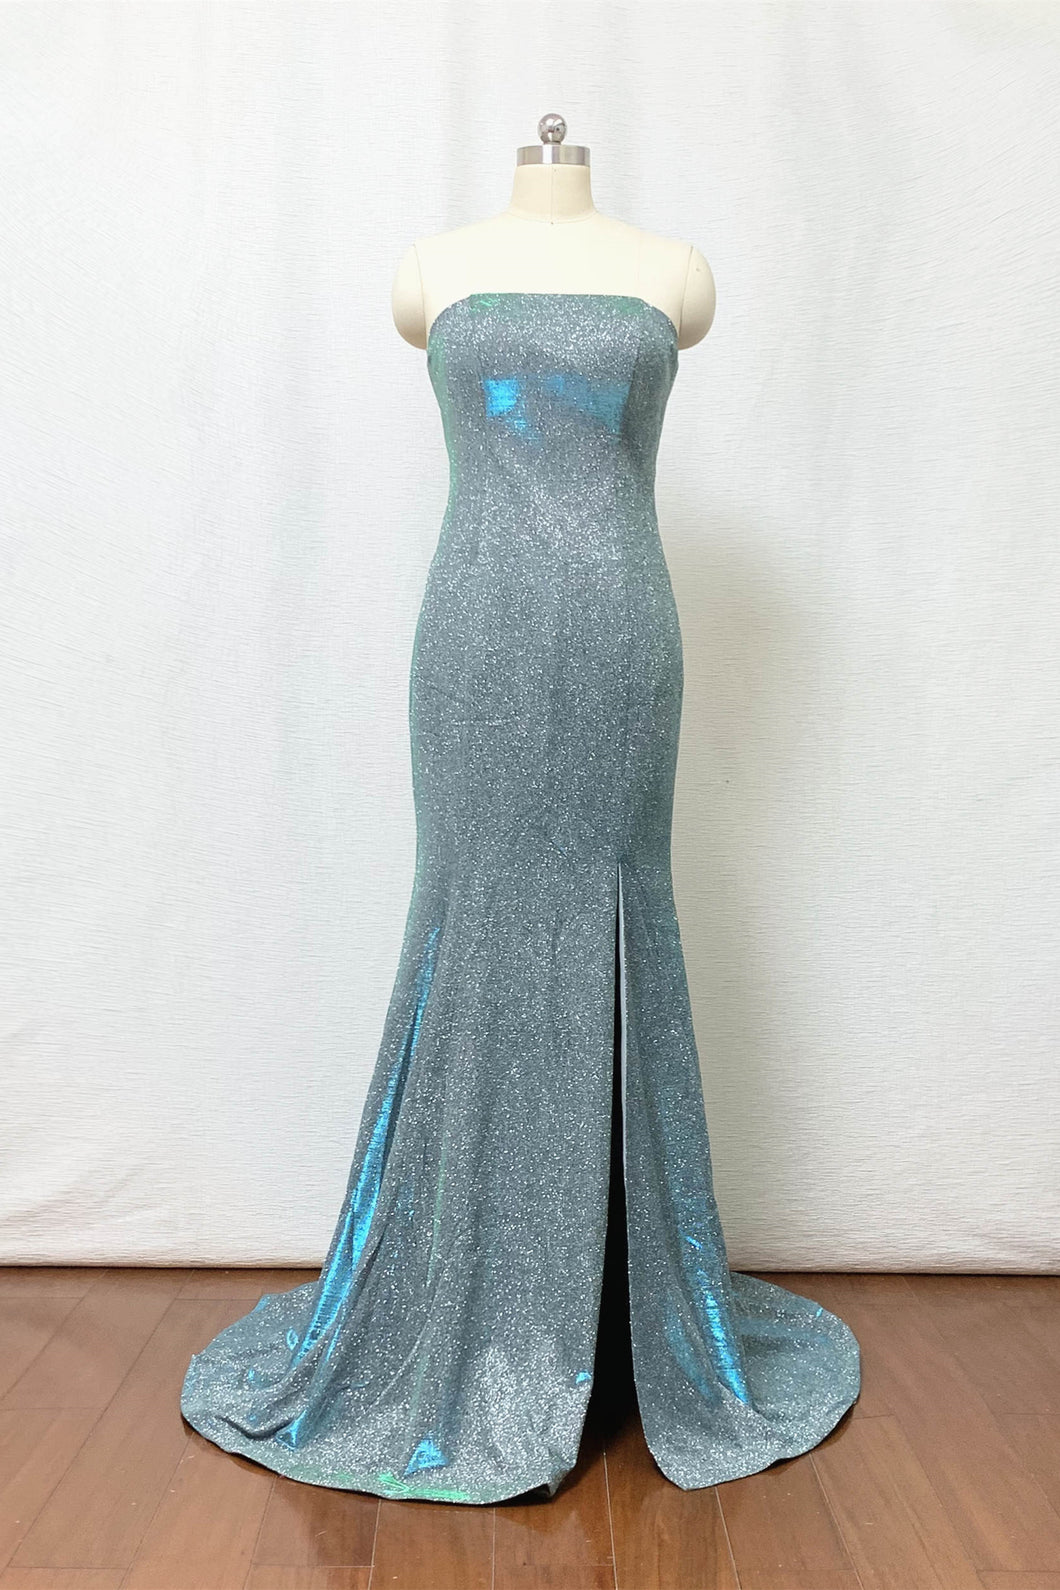 Mermaid Prom Dress 2020 Strapless Silver Green Glitter Long Evening Dress with Slit